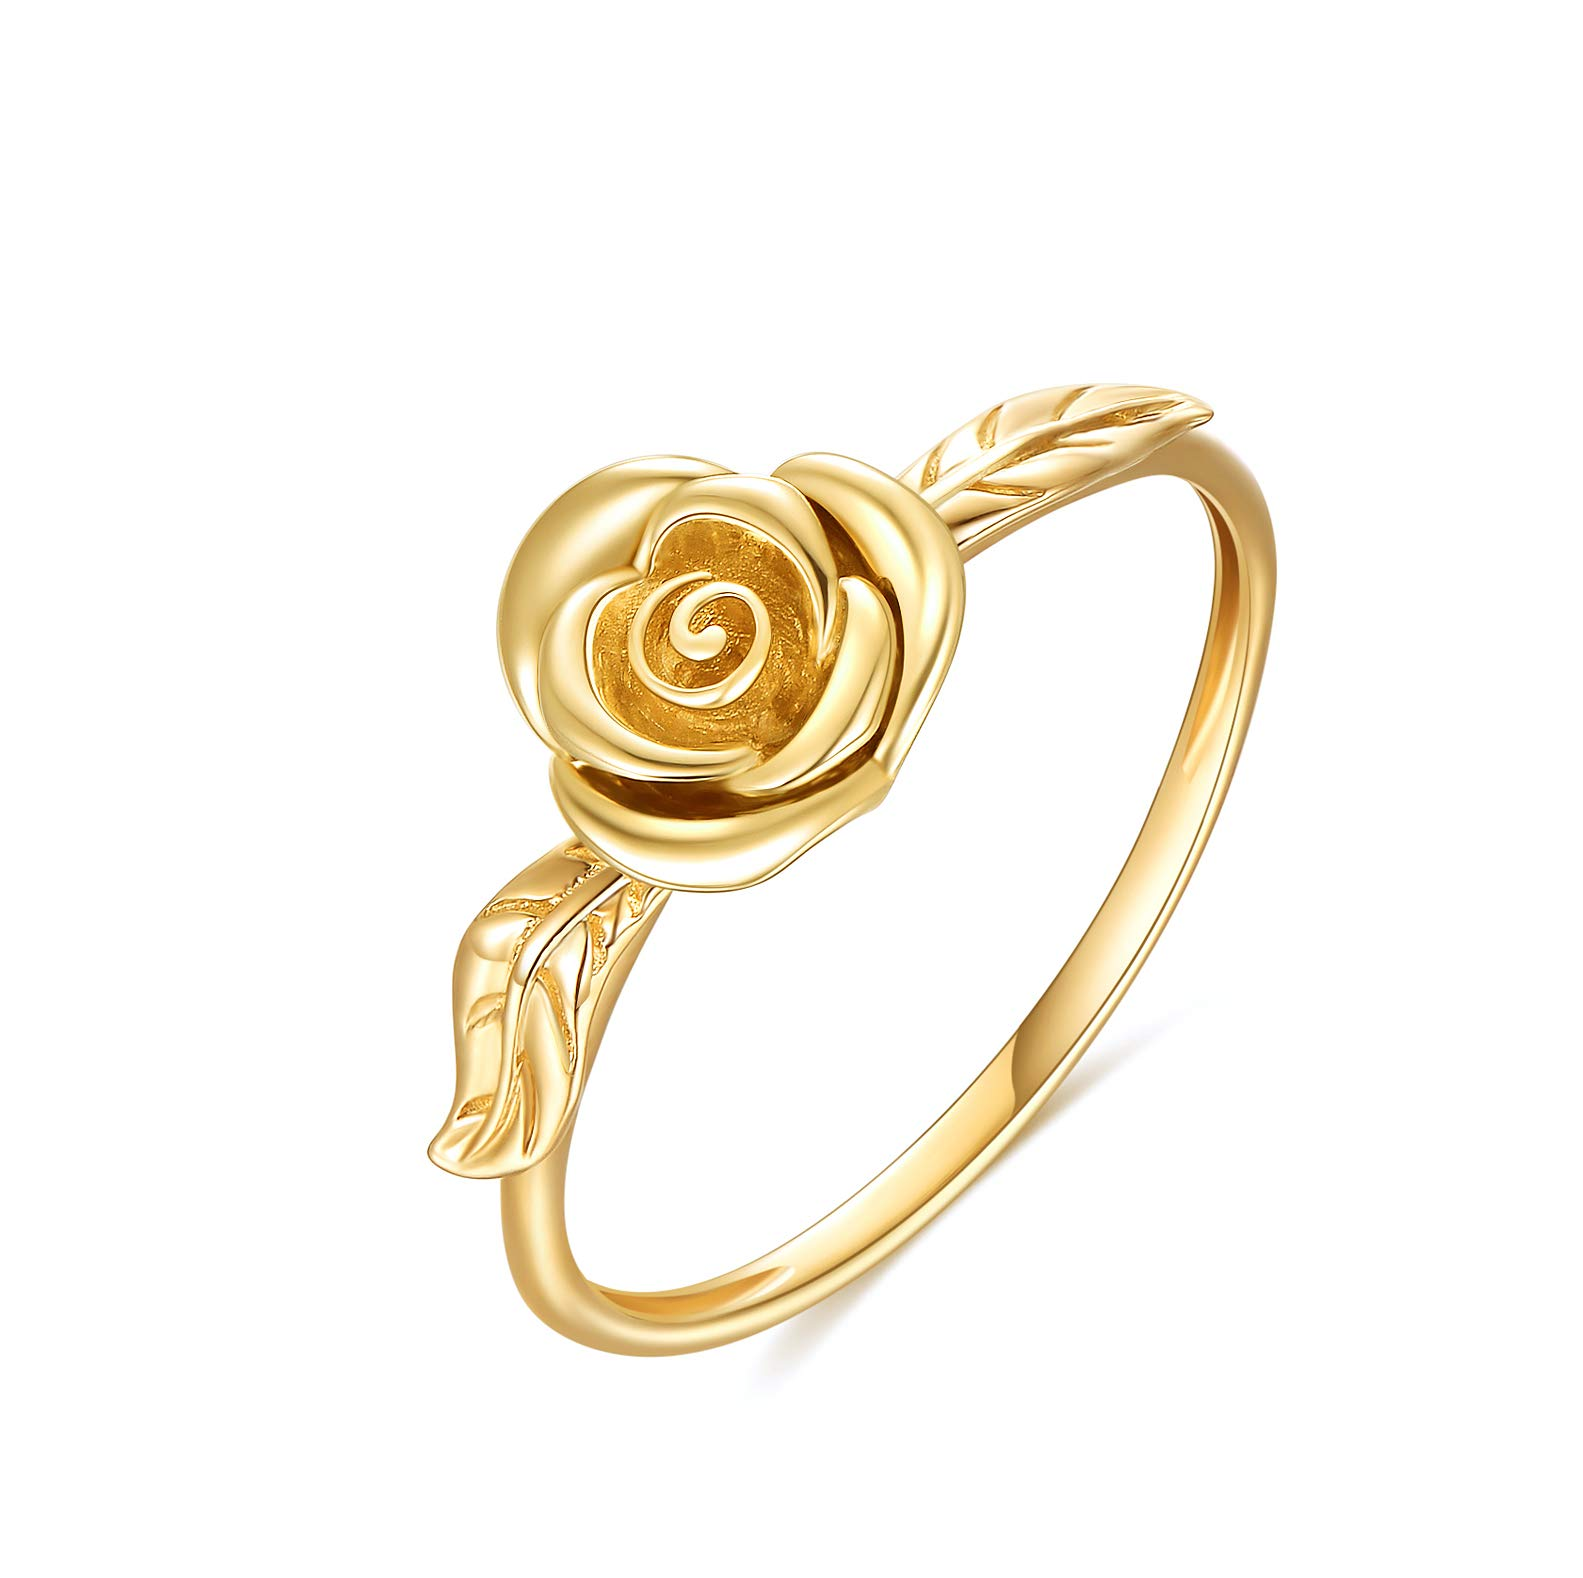 14K Gold Ring For Women, Yellow Gold Rose Flower Engagement Ring, Fine Jewelry Gifts for Wife, Girls on Wedding, Mother's Day, Birthday, Anniversary, Size 5 to 11